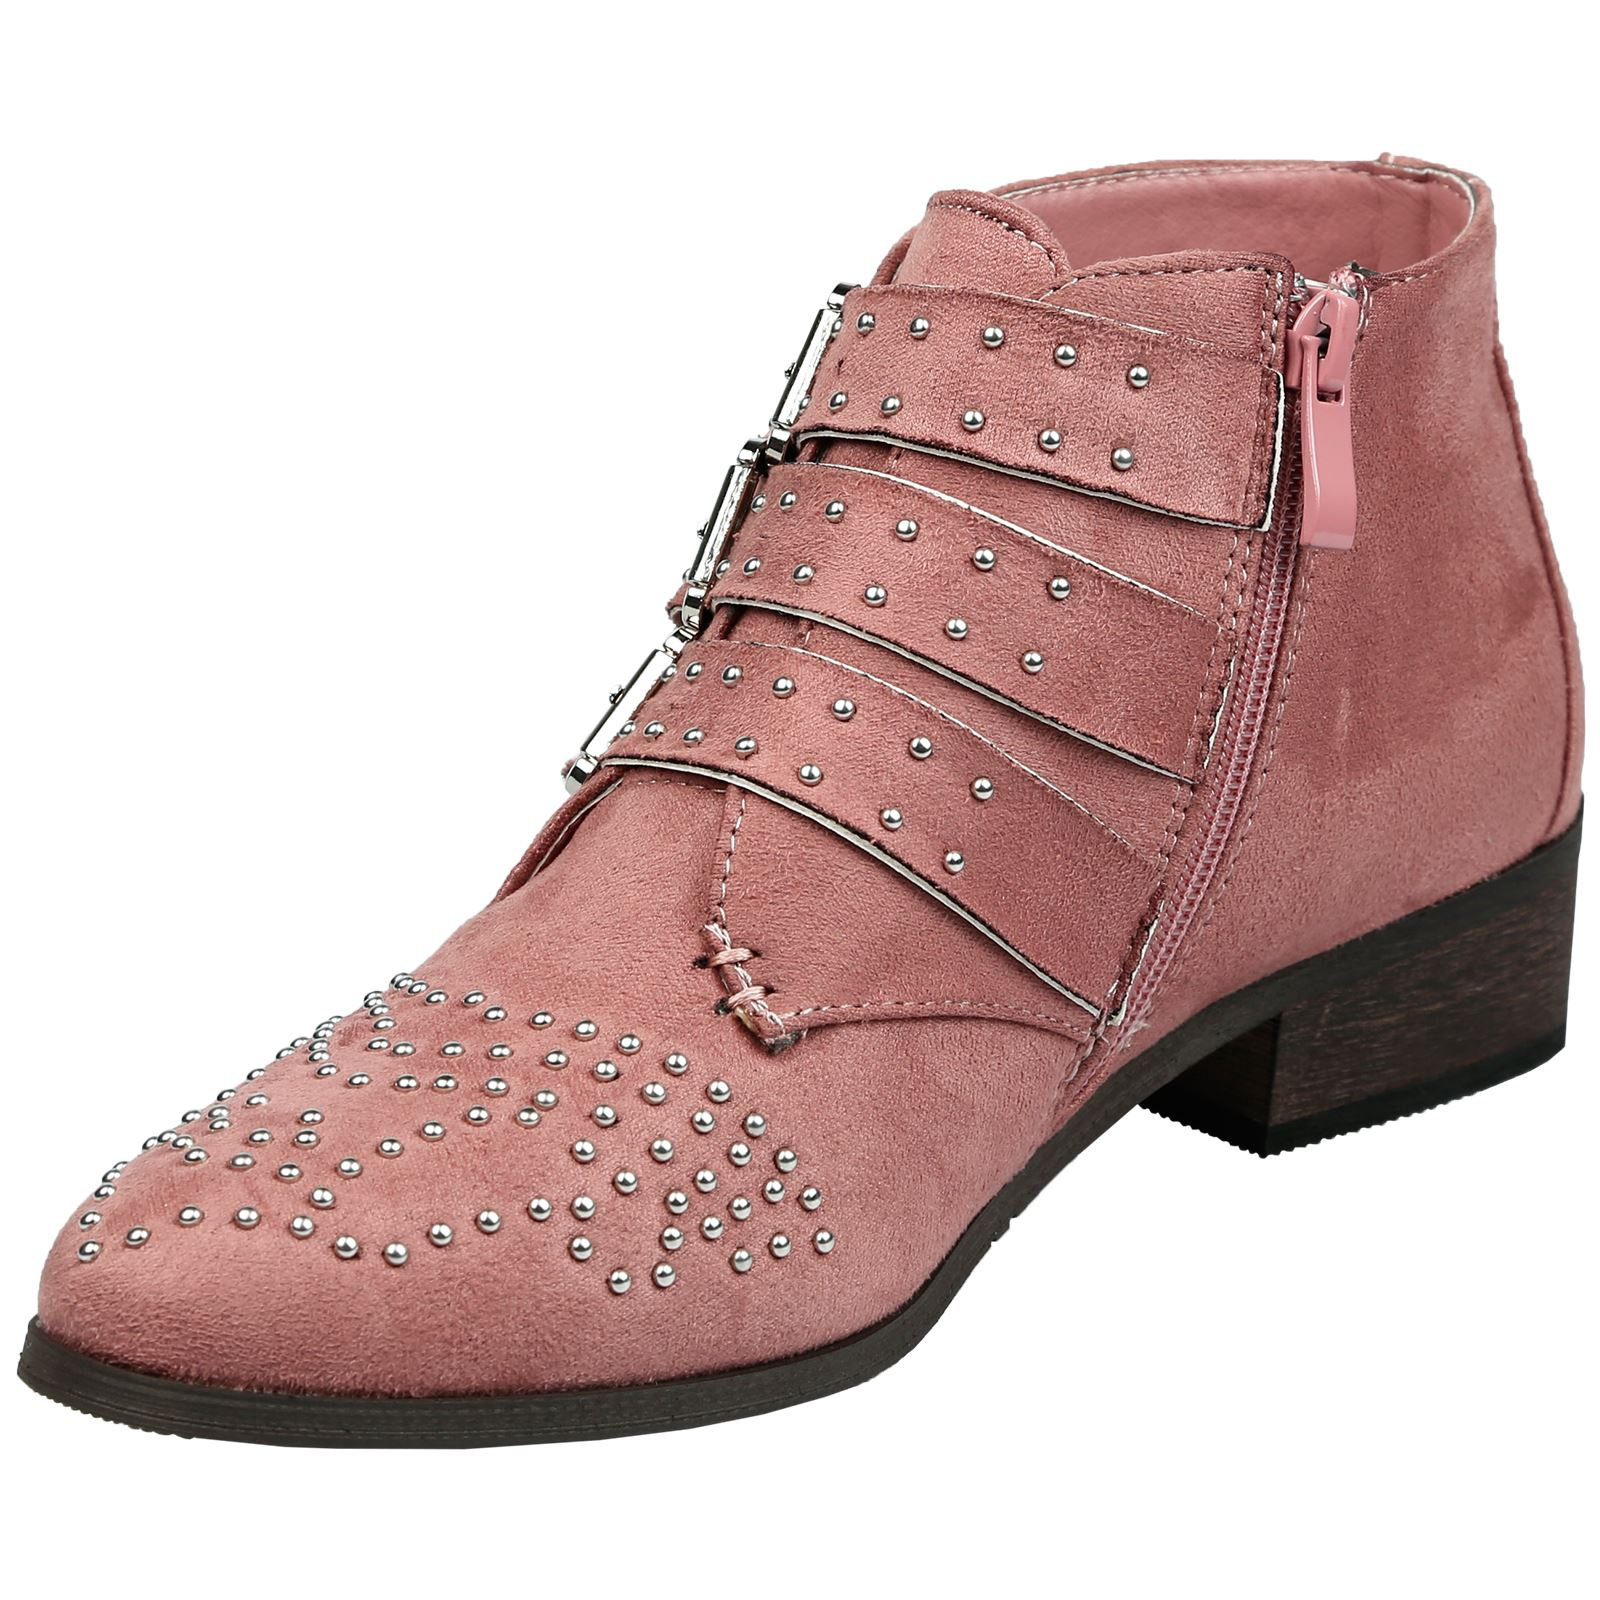 Liv-Womens-Flats-Low-Heels-Buckle-Strappy-Biker-Ankle-Boots-Ladies-Shoes-Studded thumbnail 28